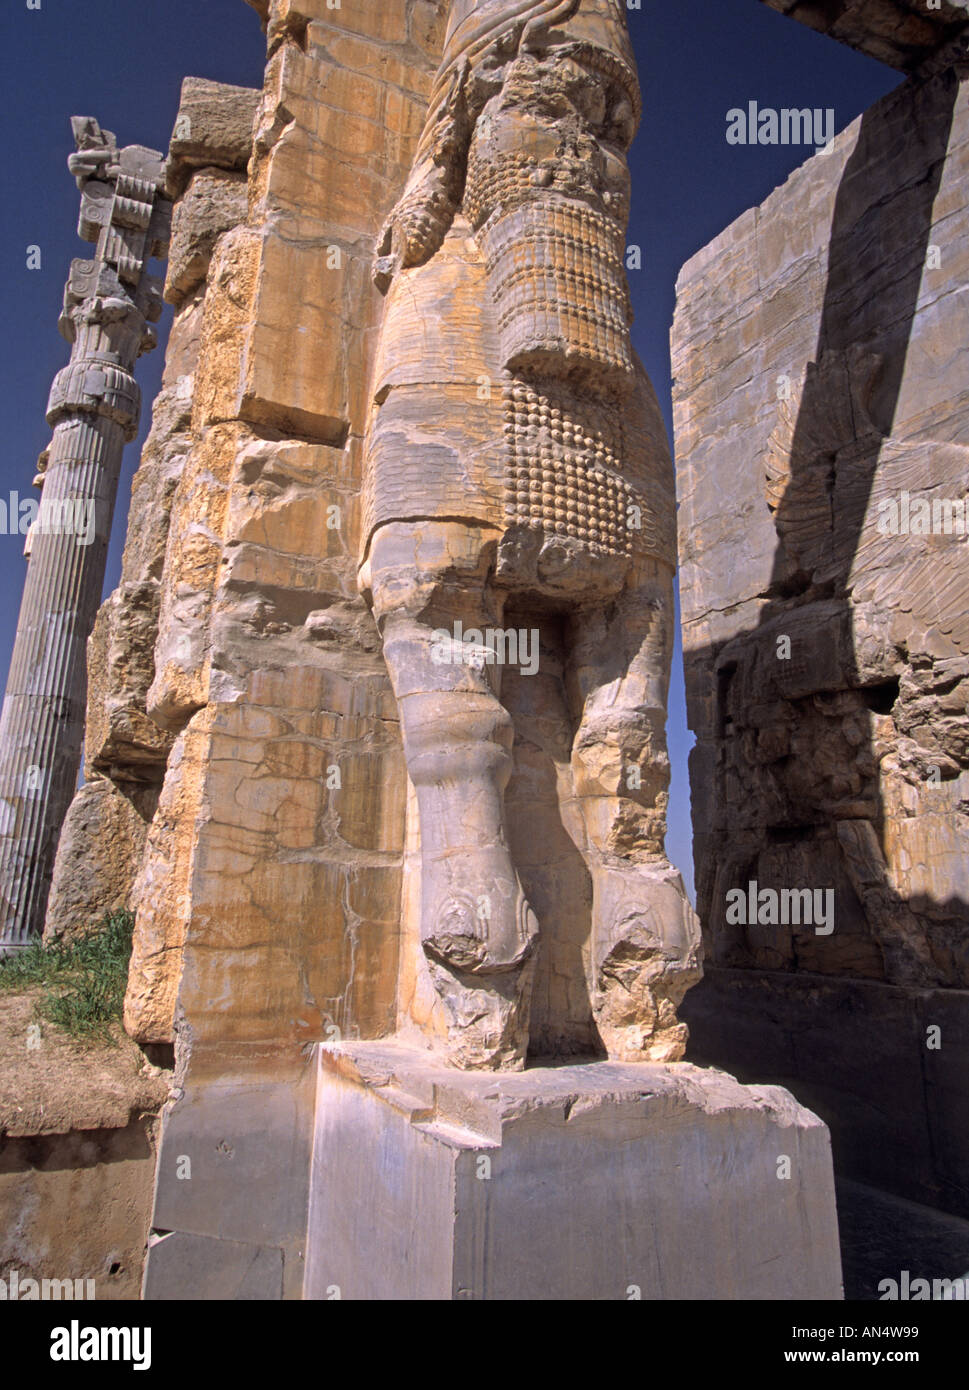 Ruins of the Gate of All Nations in ancient city of Persepolis, Iran, Middle East Stock Photo